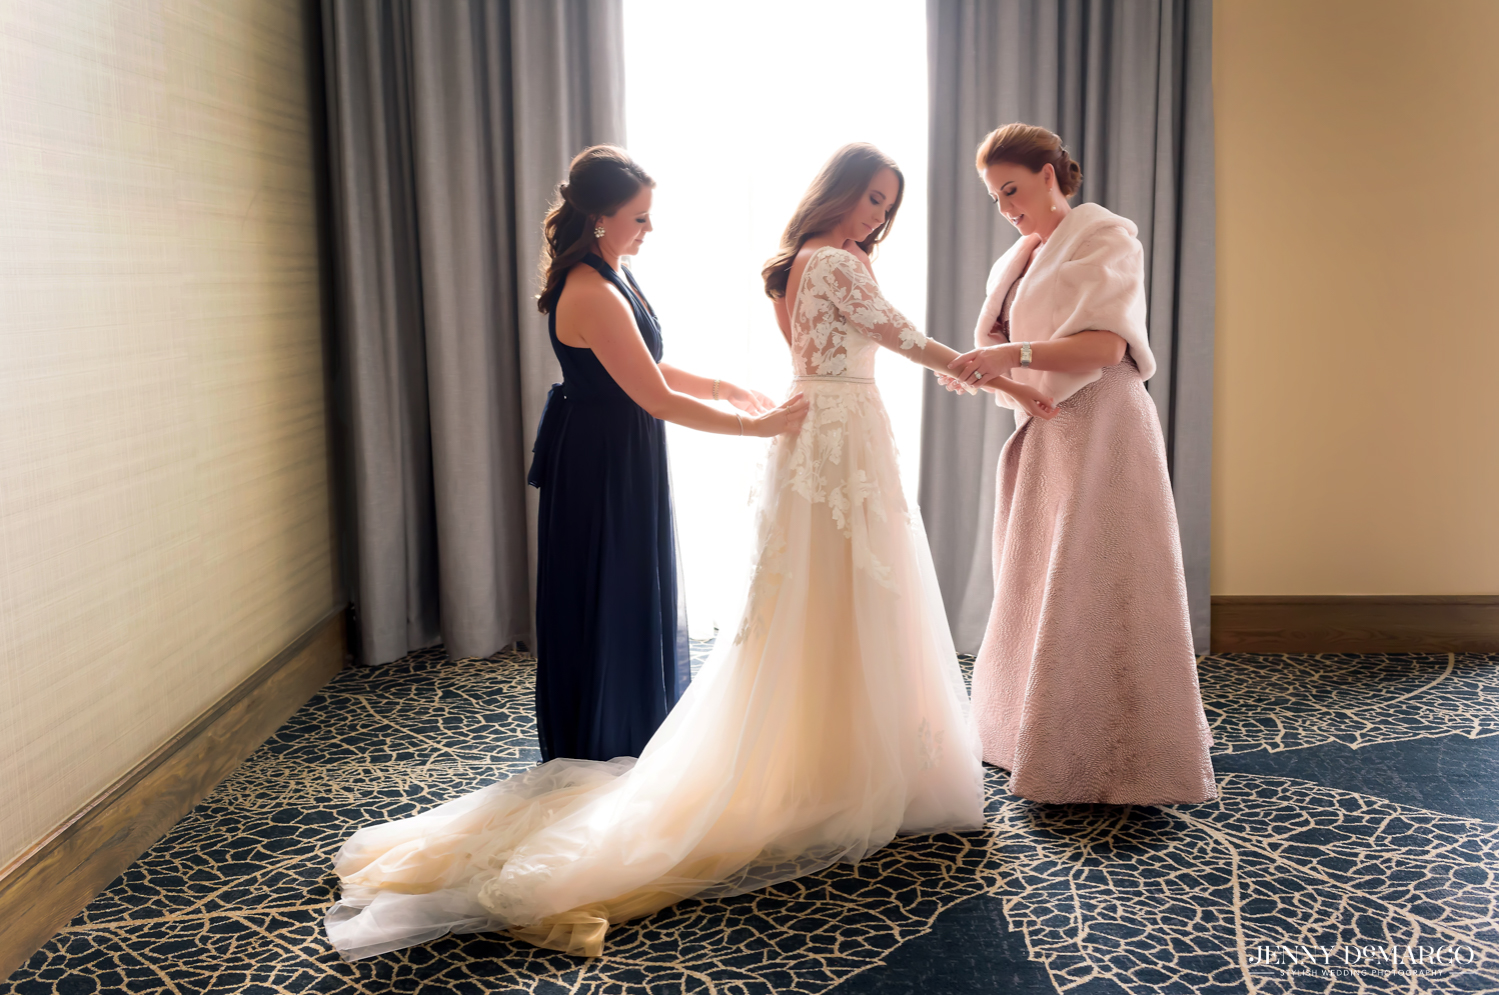 Mother and sister of bride assist with wedding dress